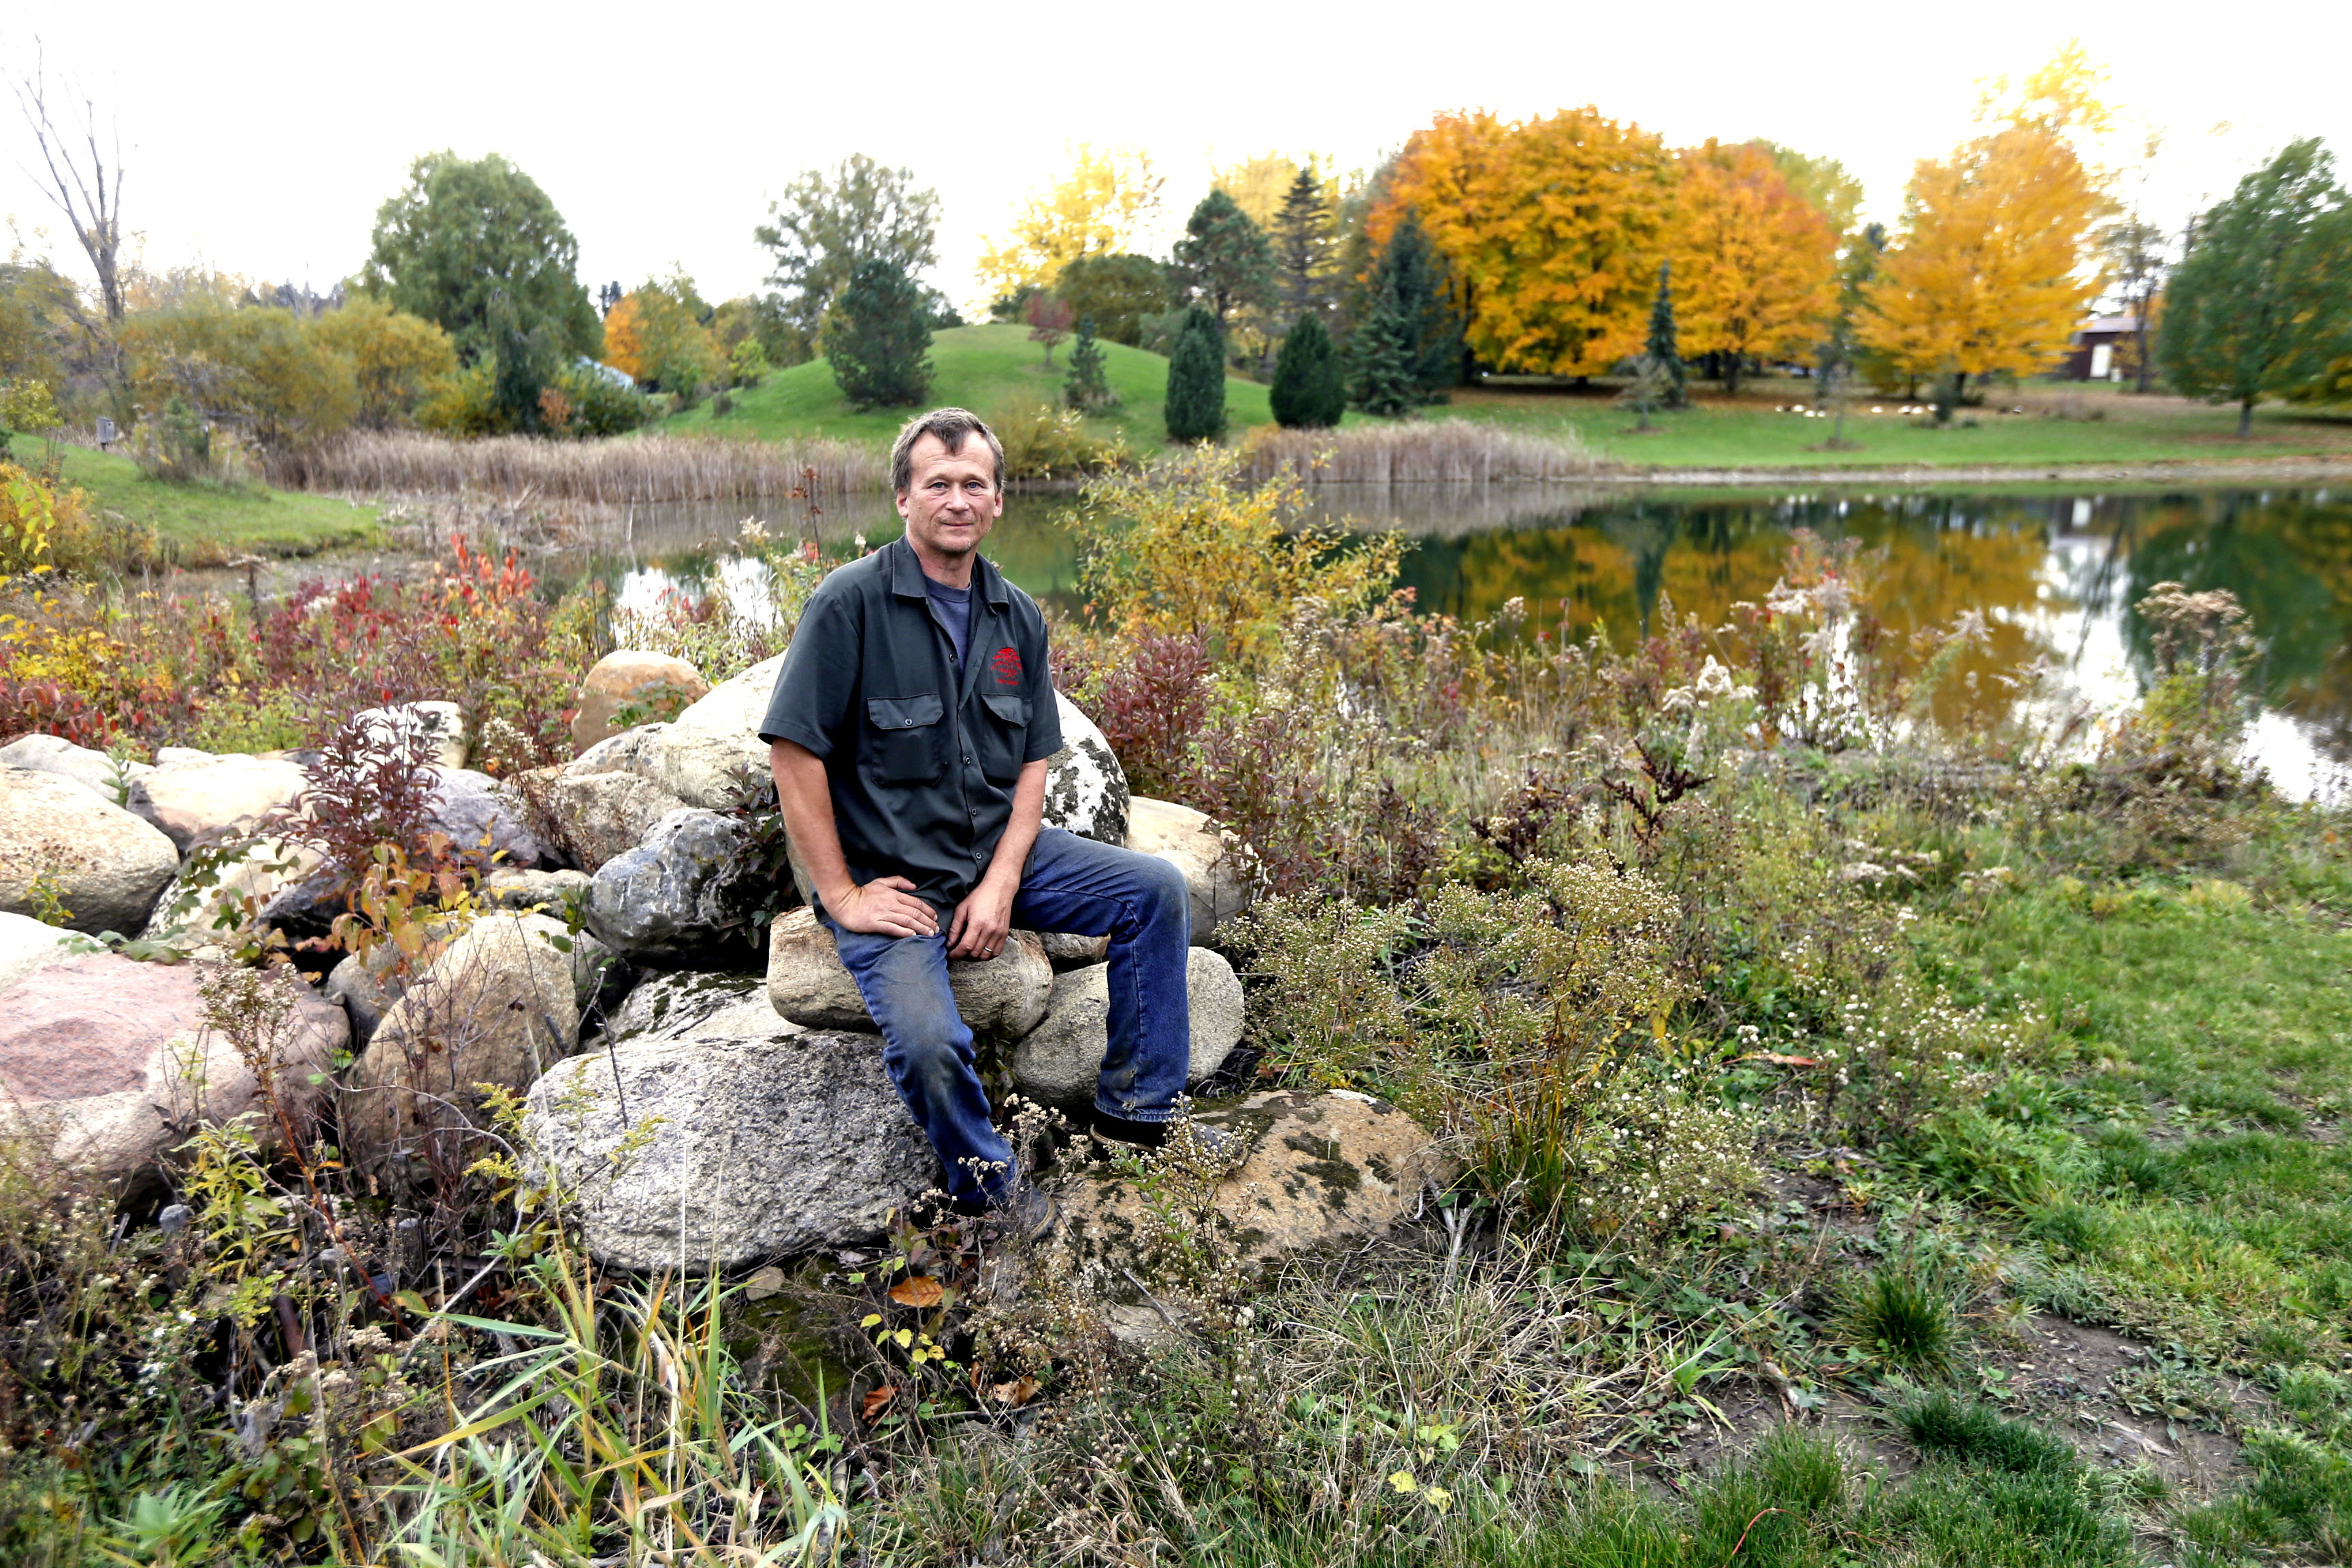 Arborist Tom Draves in his paradise onWednesday, Nov. 2, 2016. Local arborist Tom Draves recently had his arboretum in Darien Lake area approved as an accredited U.S. arboretum. It's an exciting honor and big news in the tree world. (Robert Kirkham/Buffalo News)